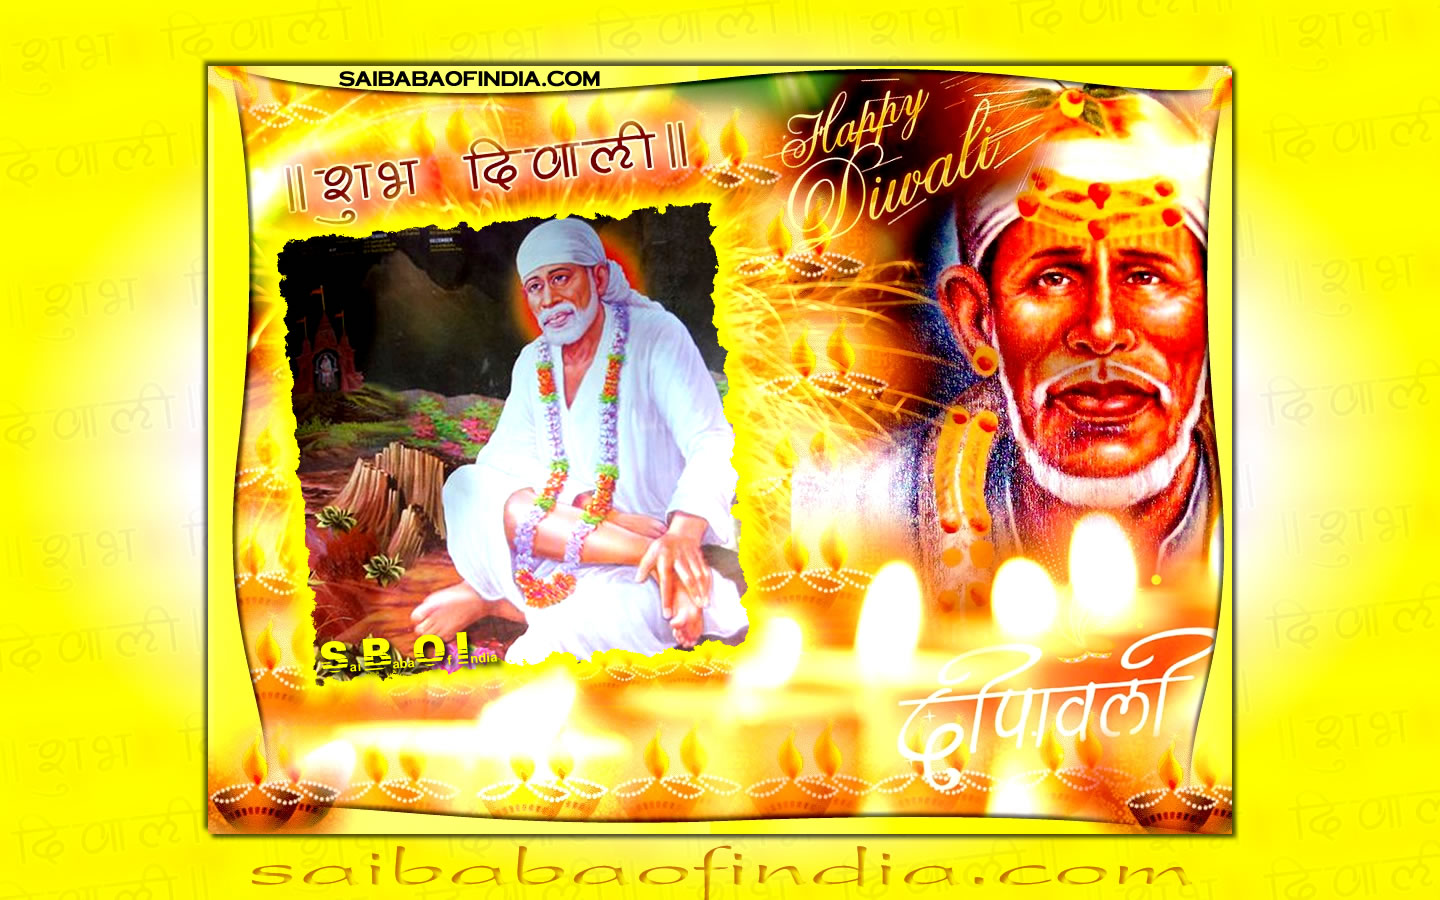 http://www.saibabaofindia.com/march09/ws-sri-shirdi-sai-baba-diwali-wallpaper.jpg